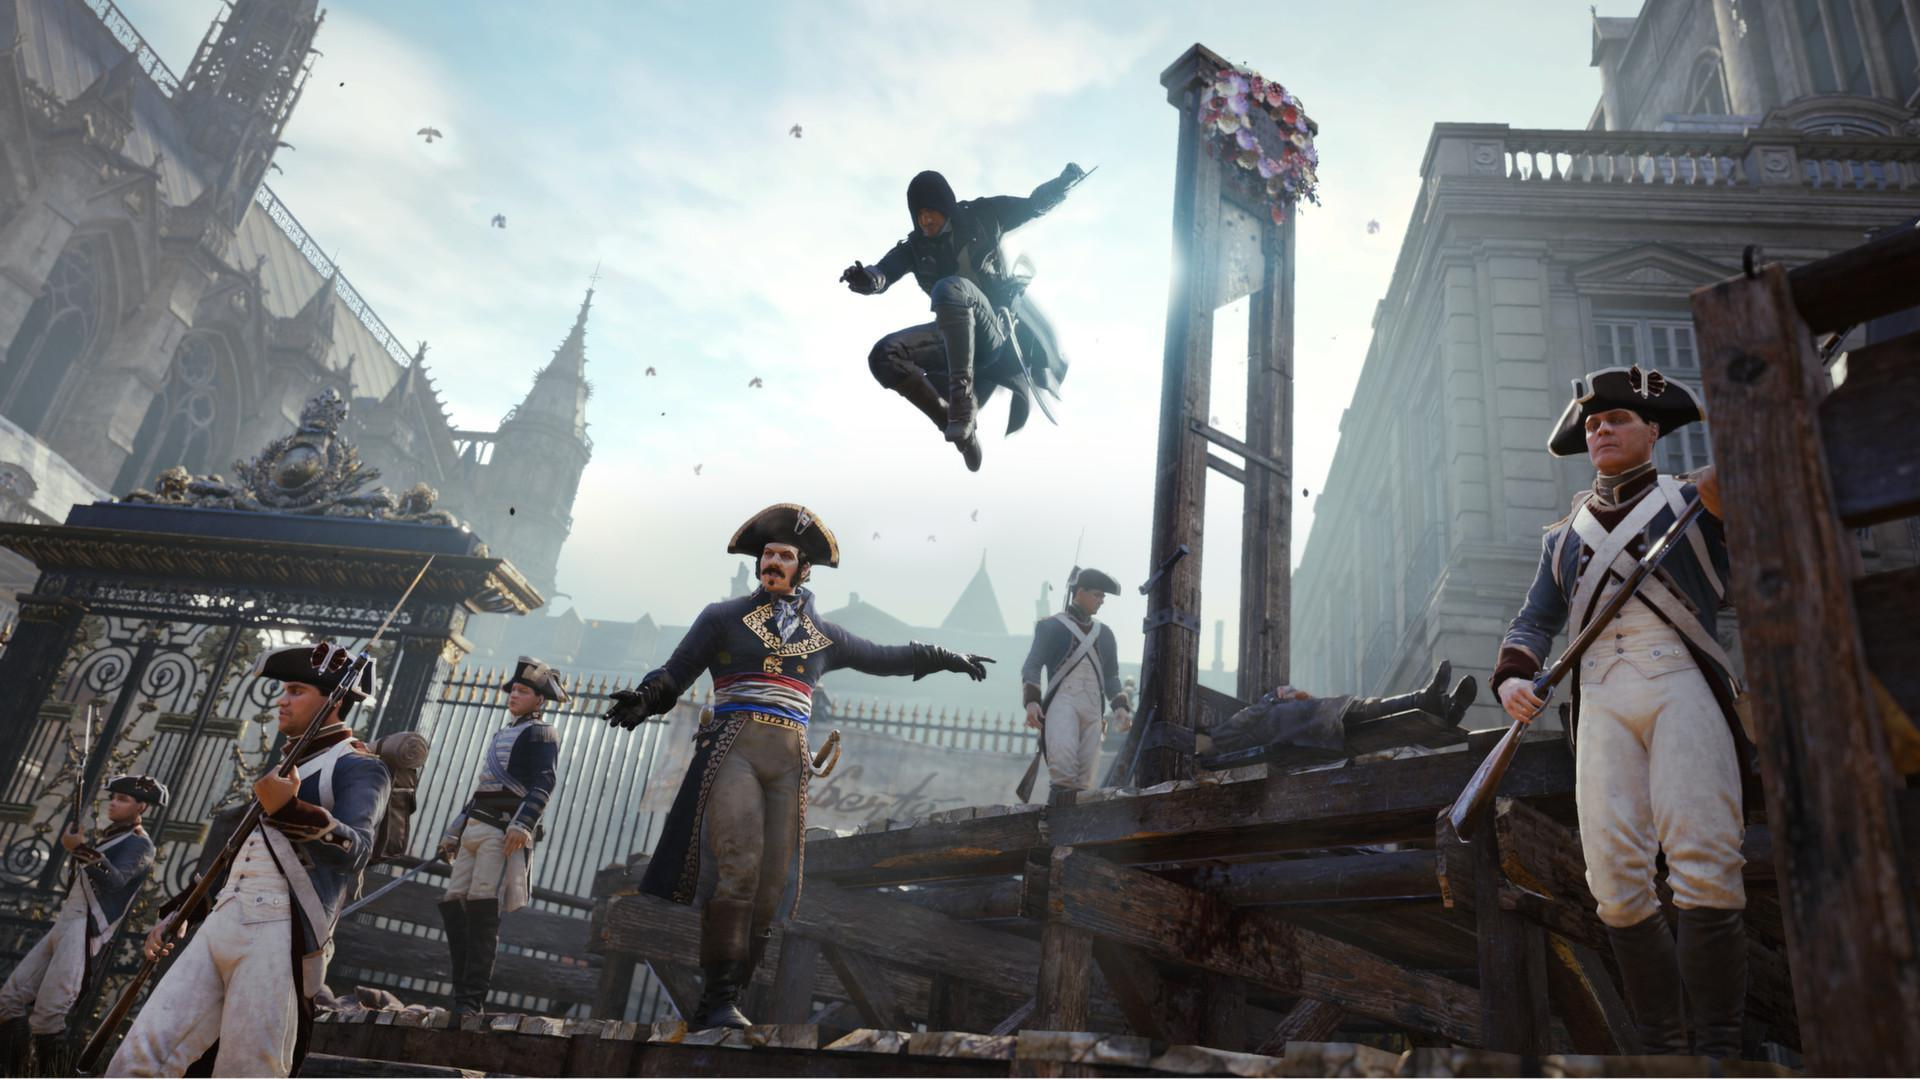 Assassin's Creed Unity in Assassin's Creed Games, Ranked From Worst to Best - 1